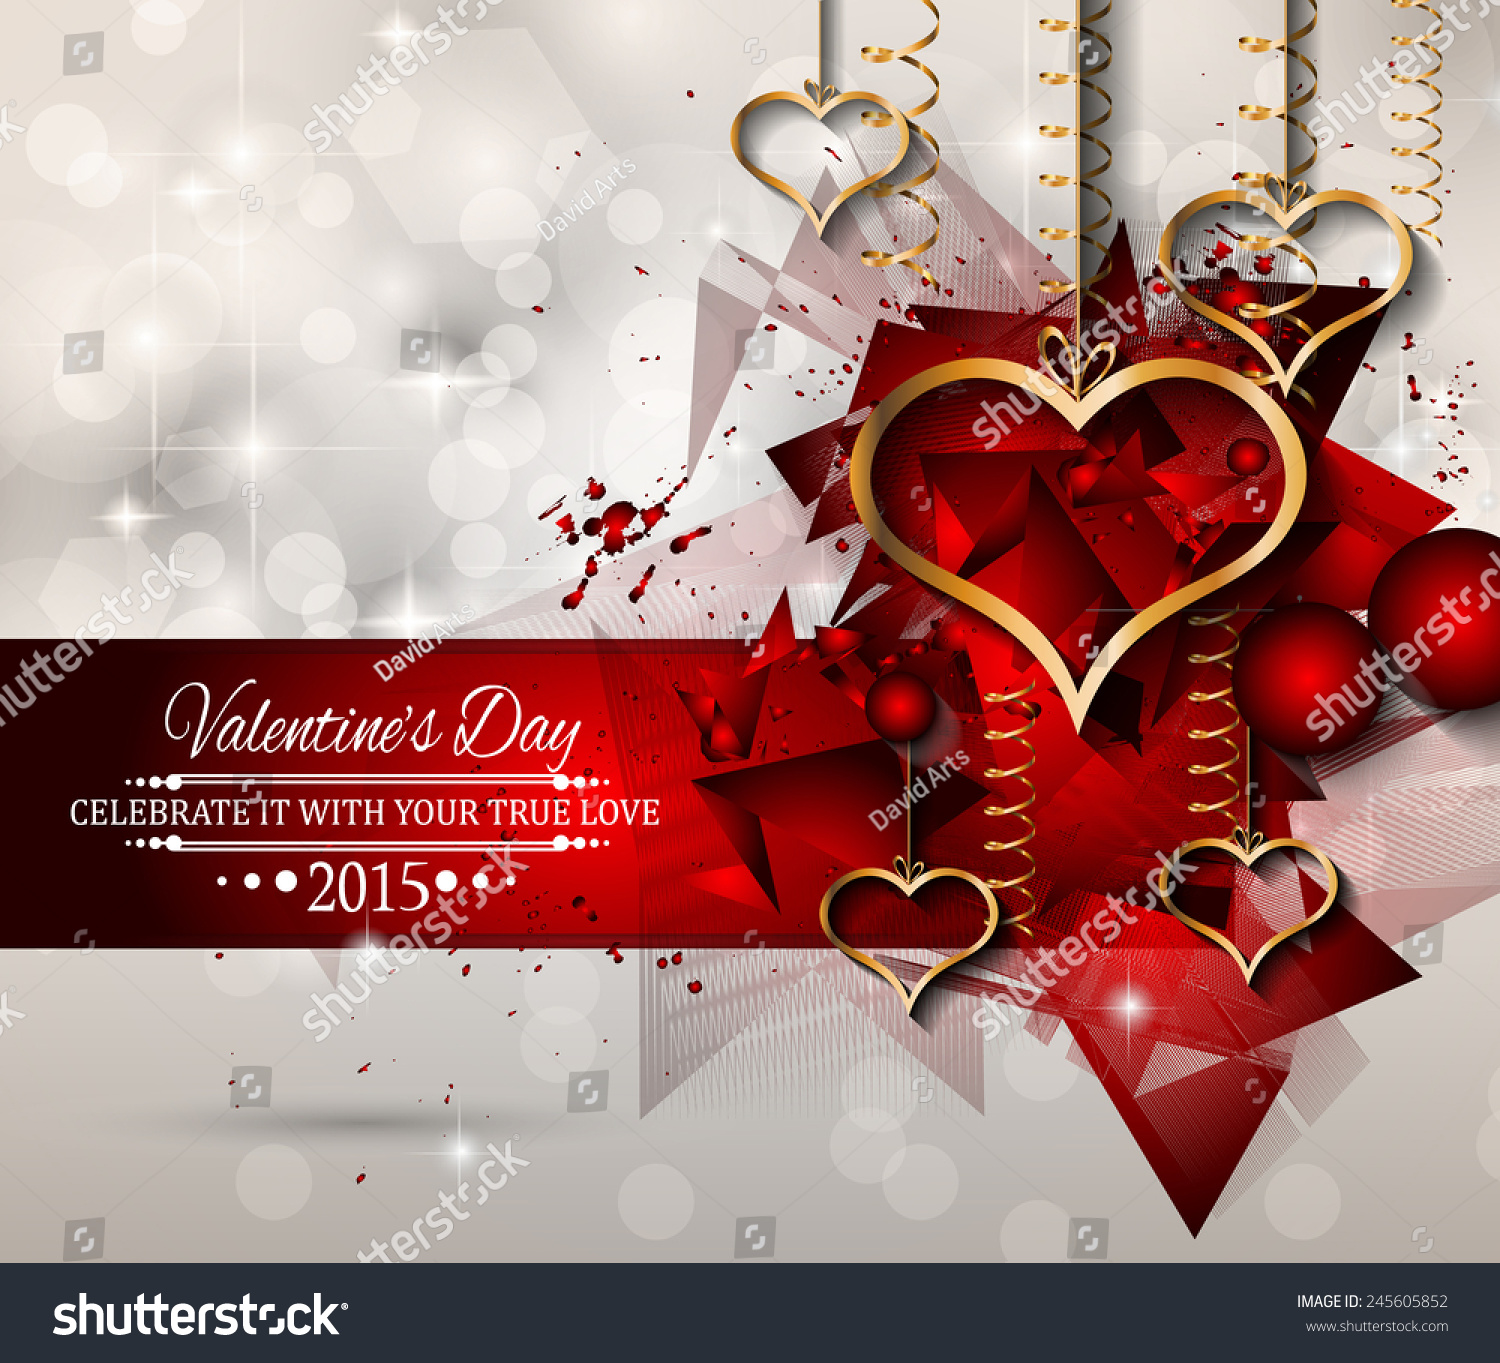 San Valentines Day Background Dinner Invitations Stock Illustration